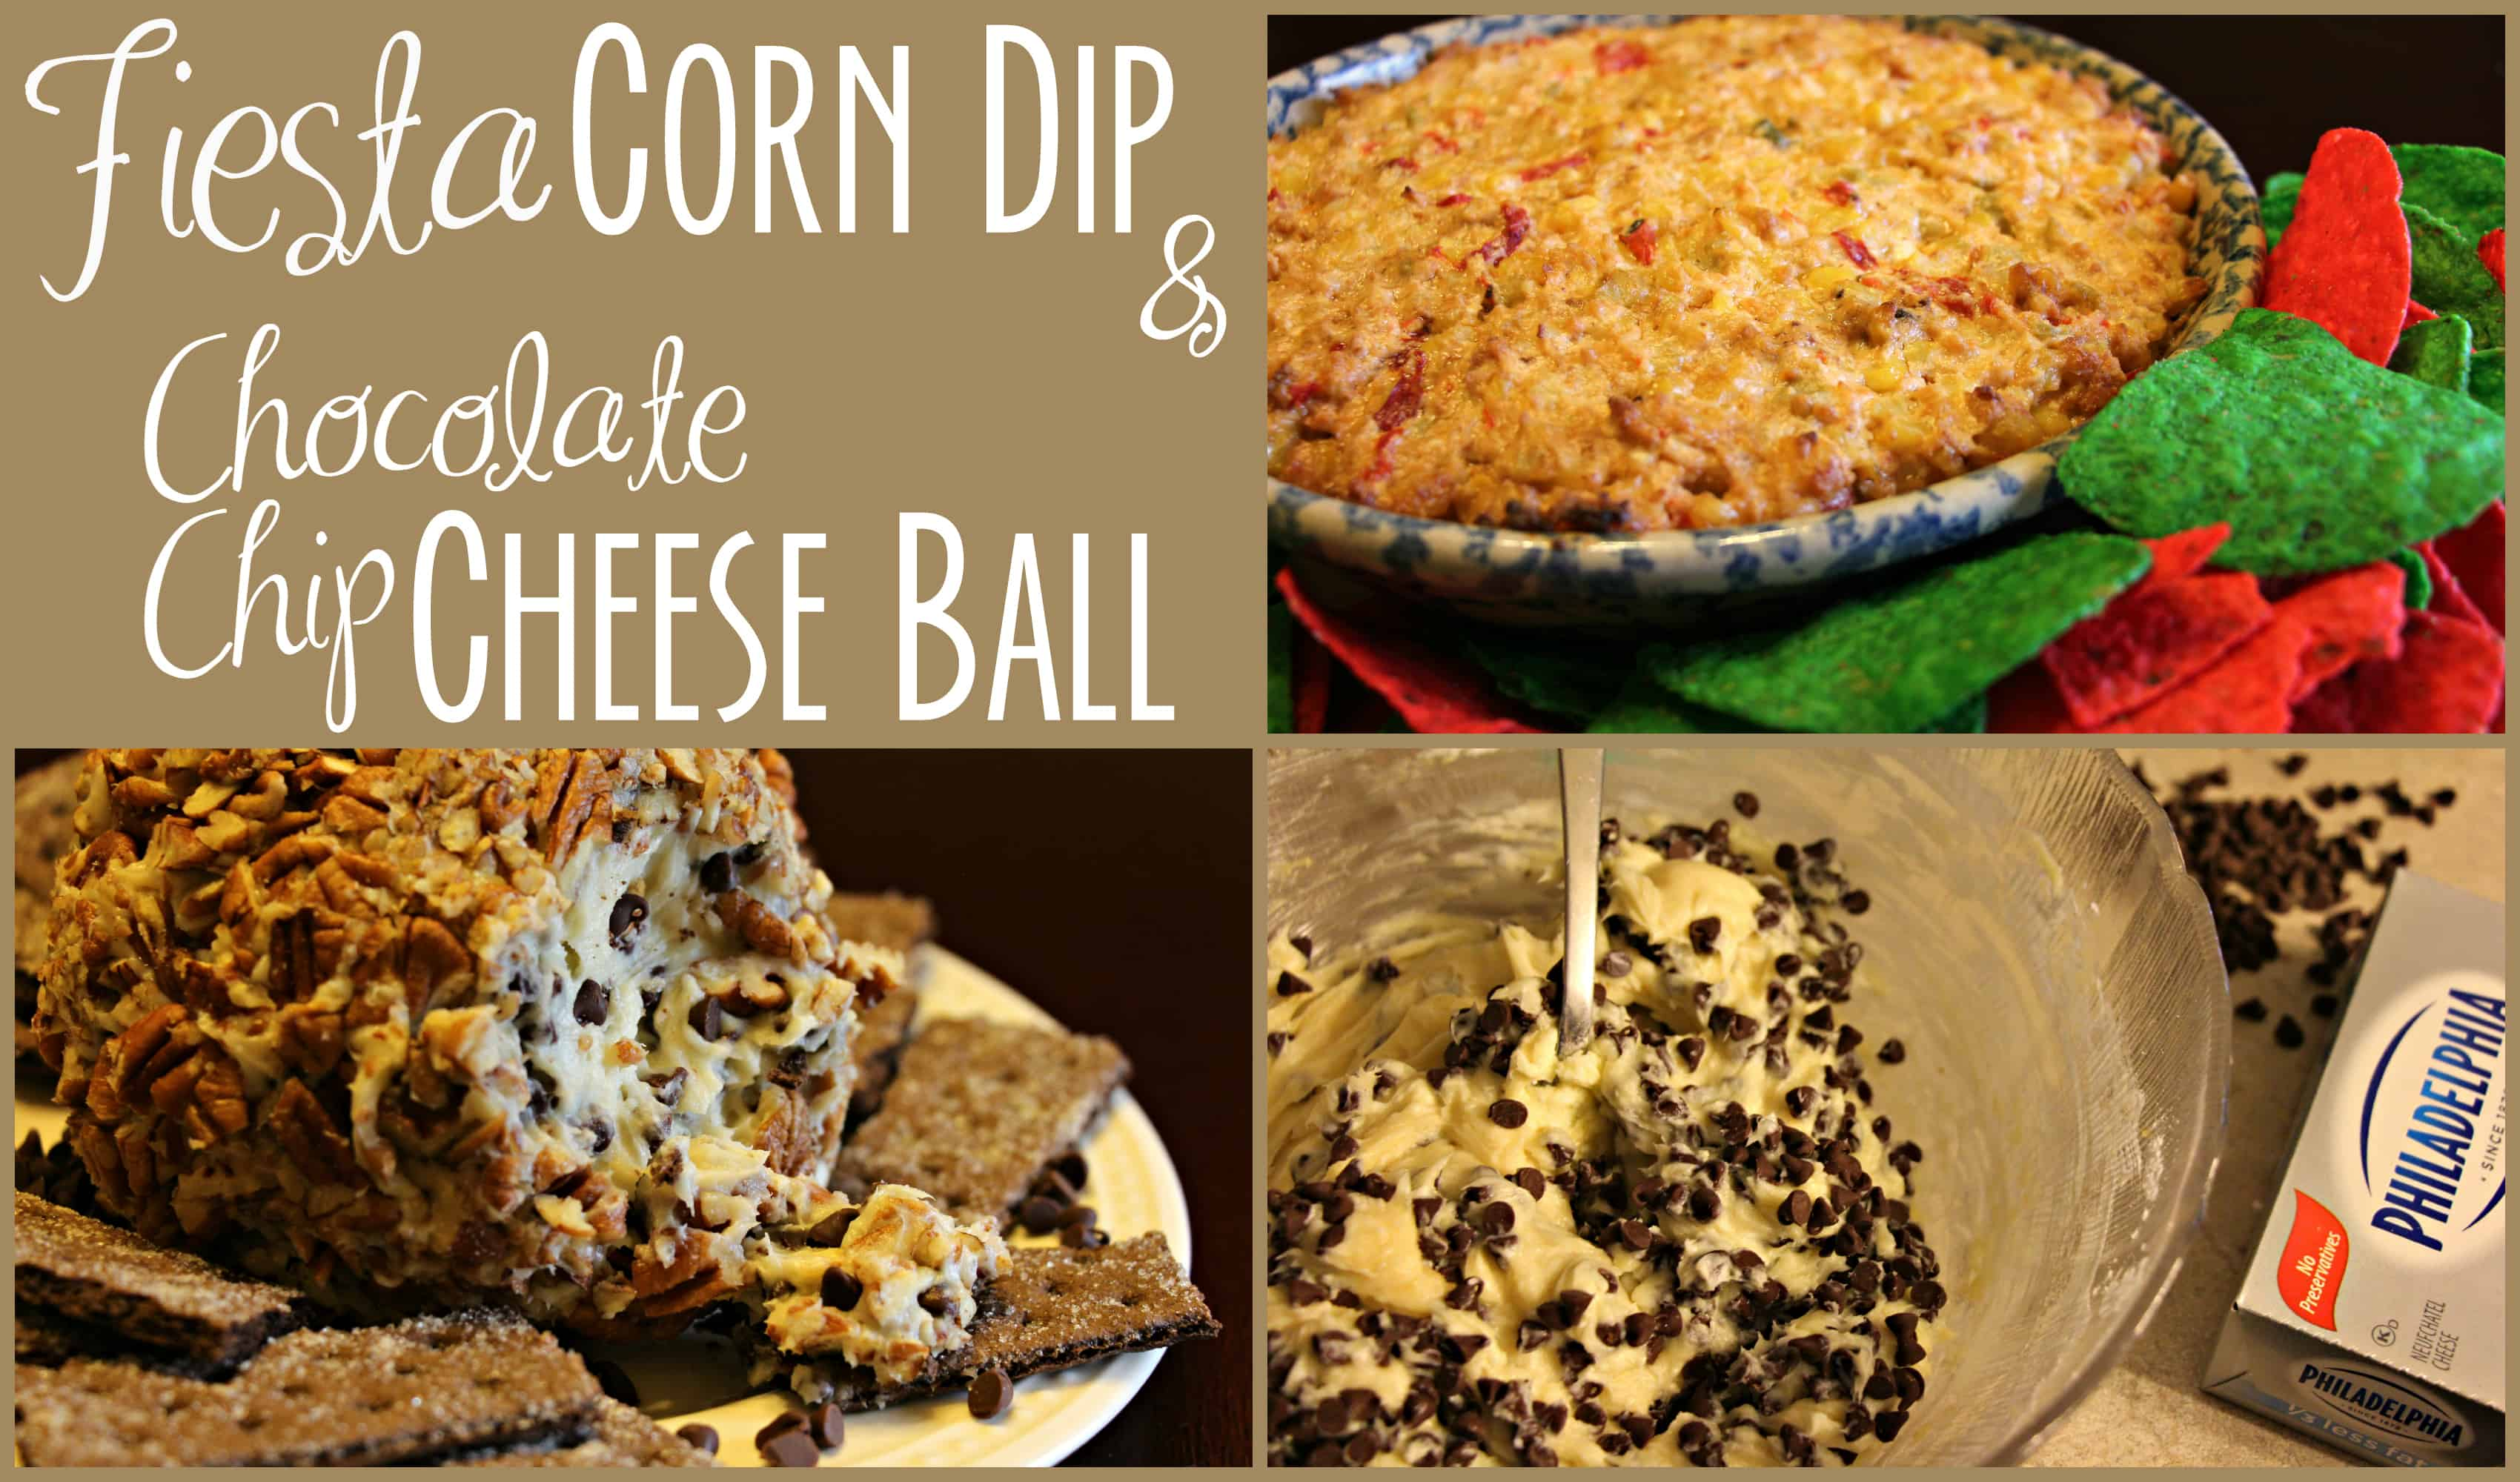 Fiesta-Corn-Cip-Chocolate-Chip-Cheese-Ball